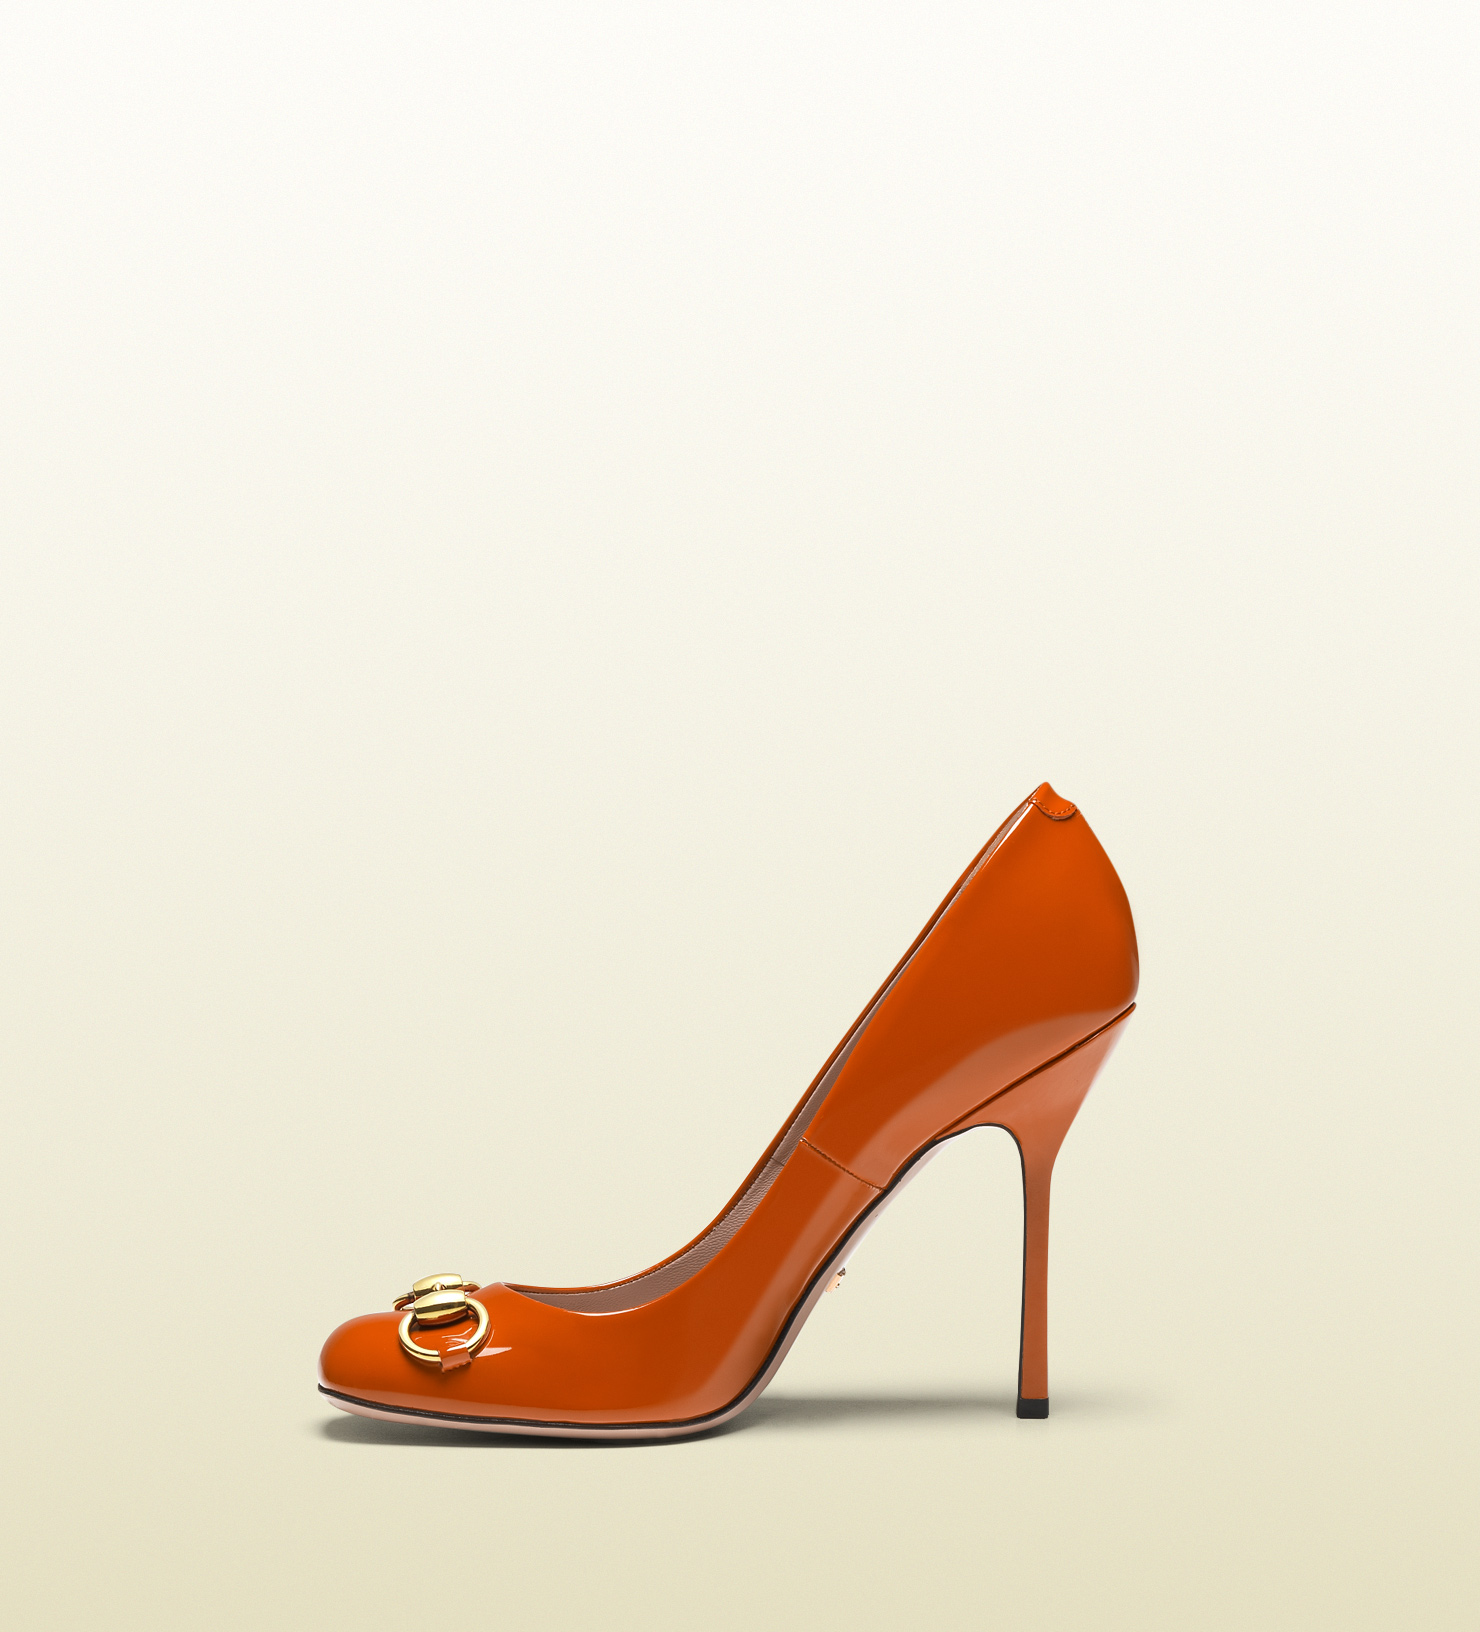 Gucci Shoes   New Gucci Nude Lisbeth Patent Leather Pumps